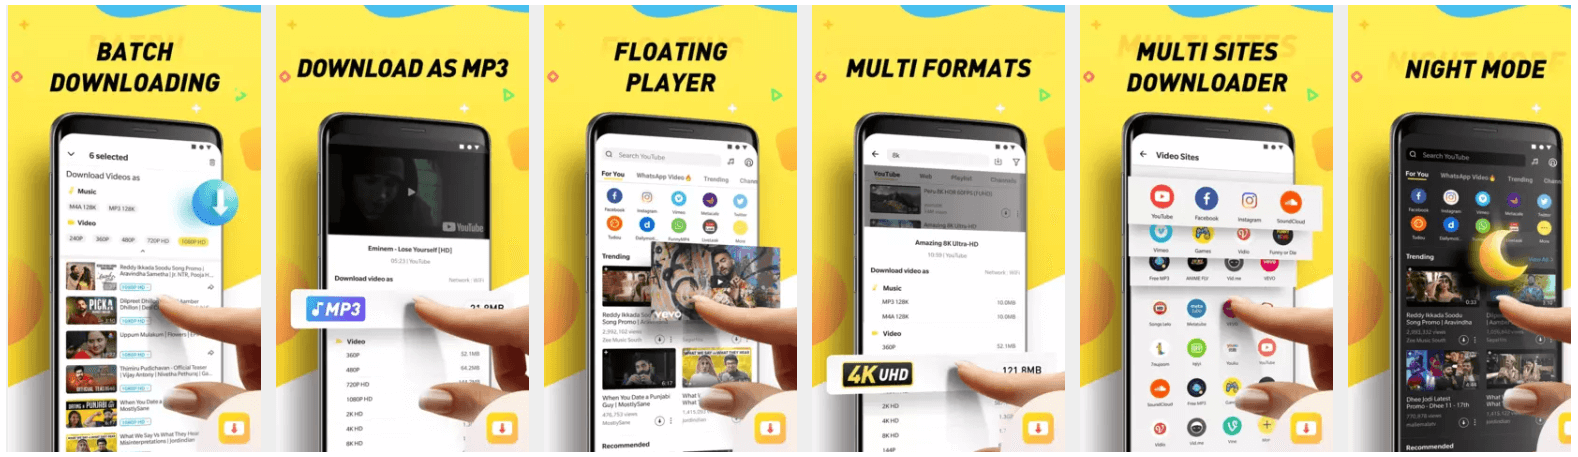 Snaptube - Android App